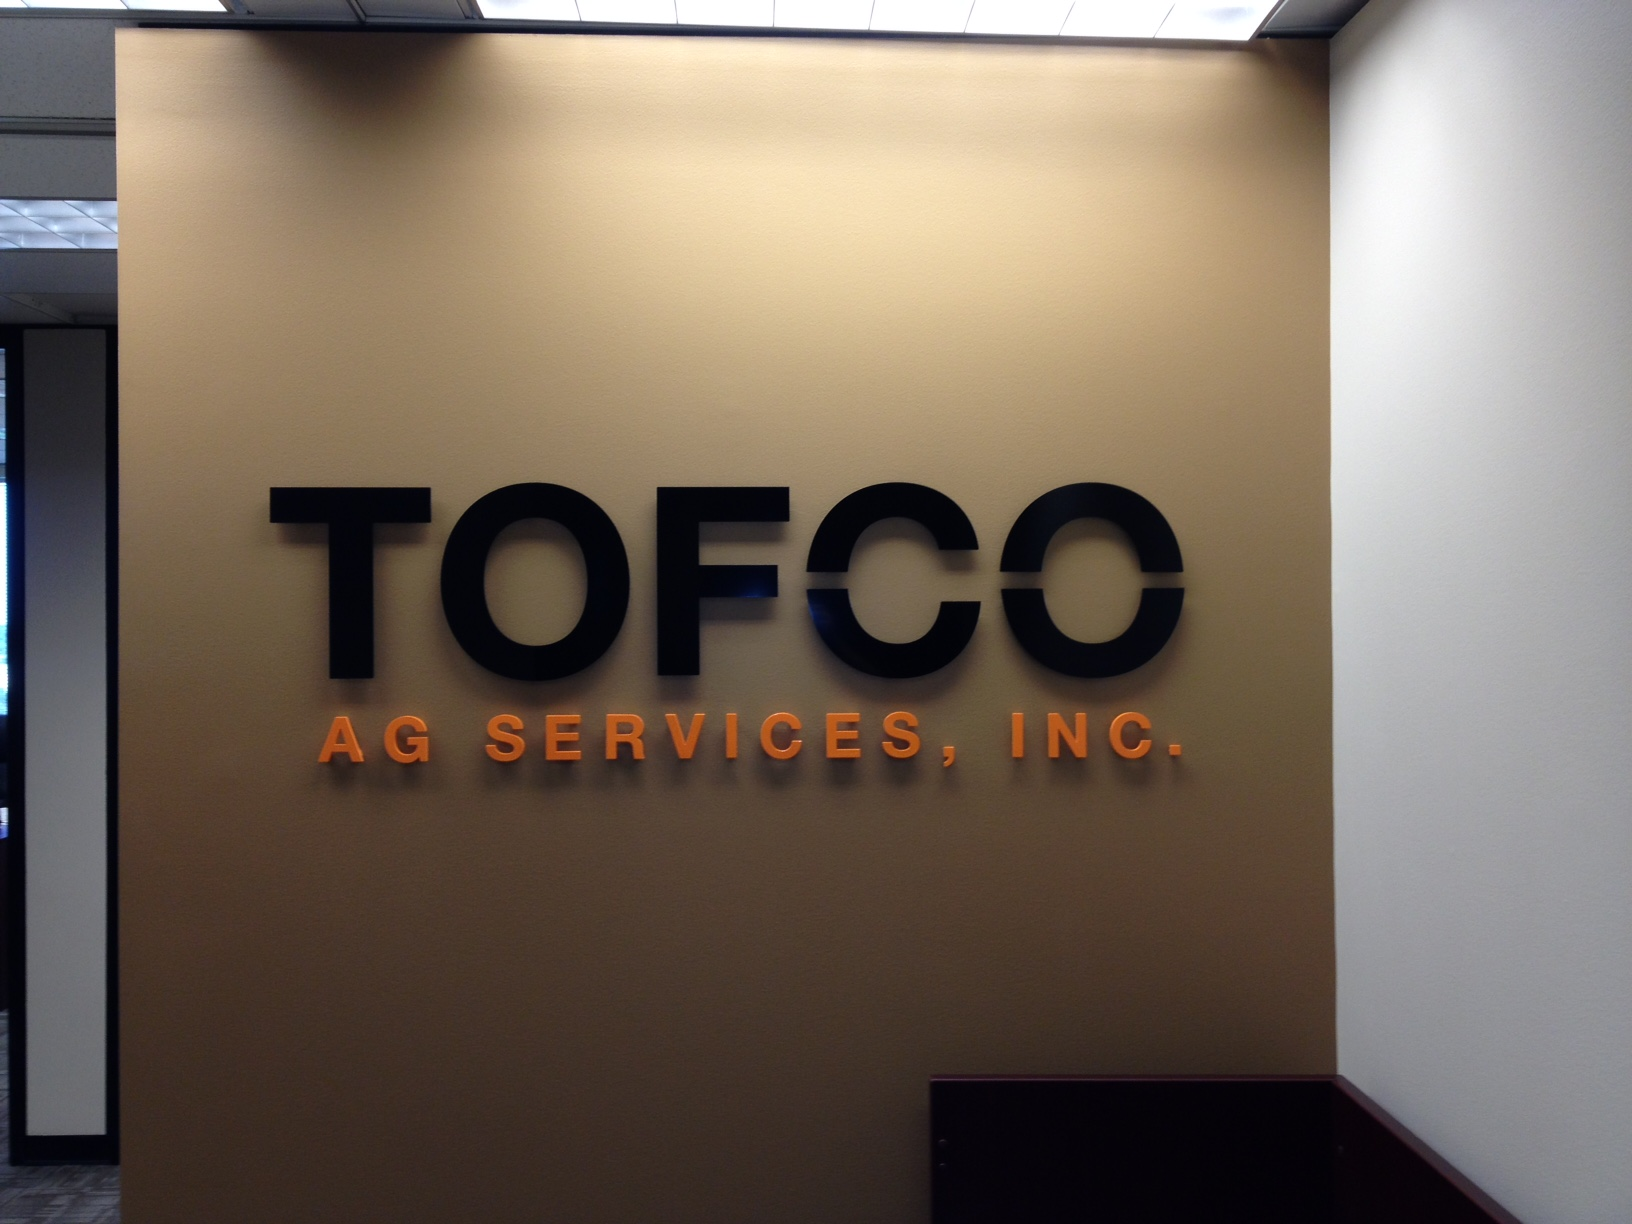 TOFCO AG Services, Inc. Lobby Sign